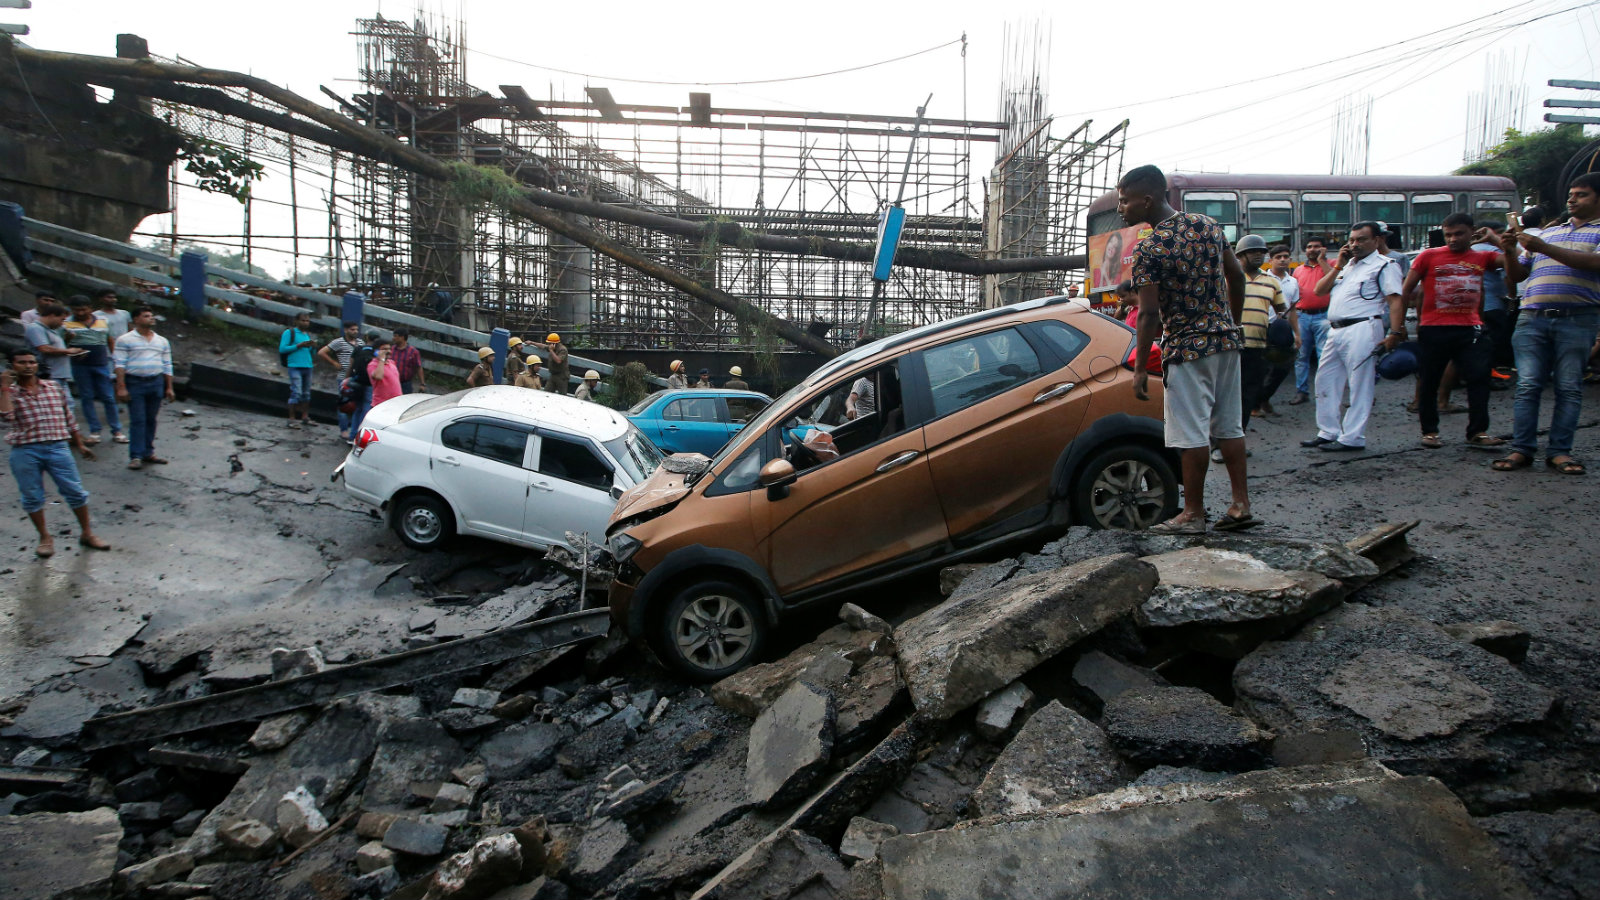 Kolkata bridge collapse kills one and injures over 30 in India